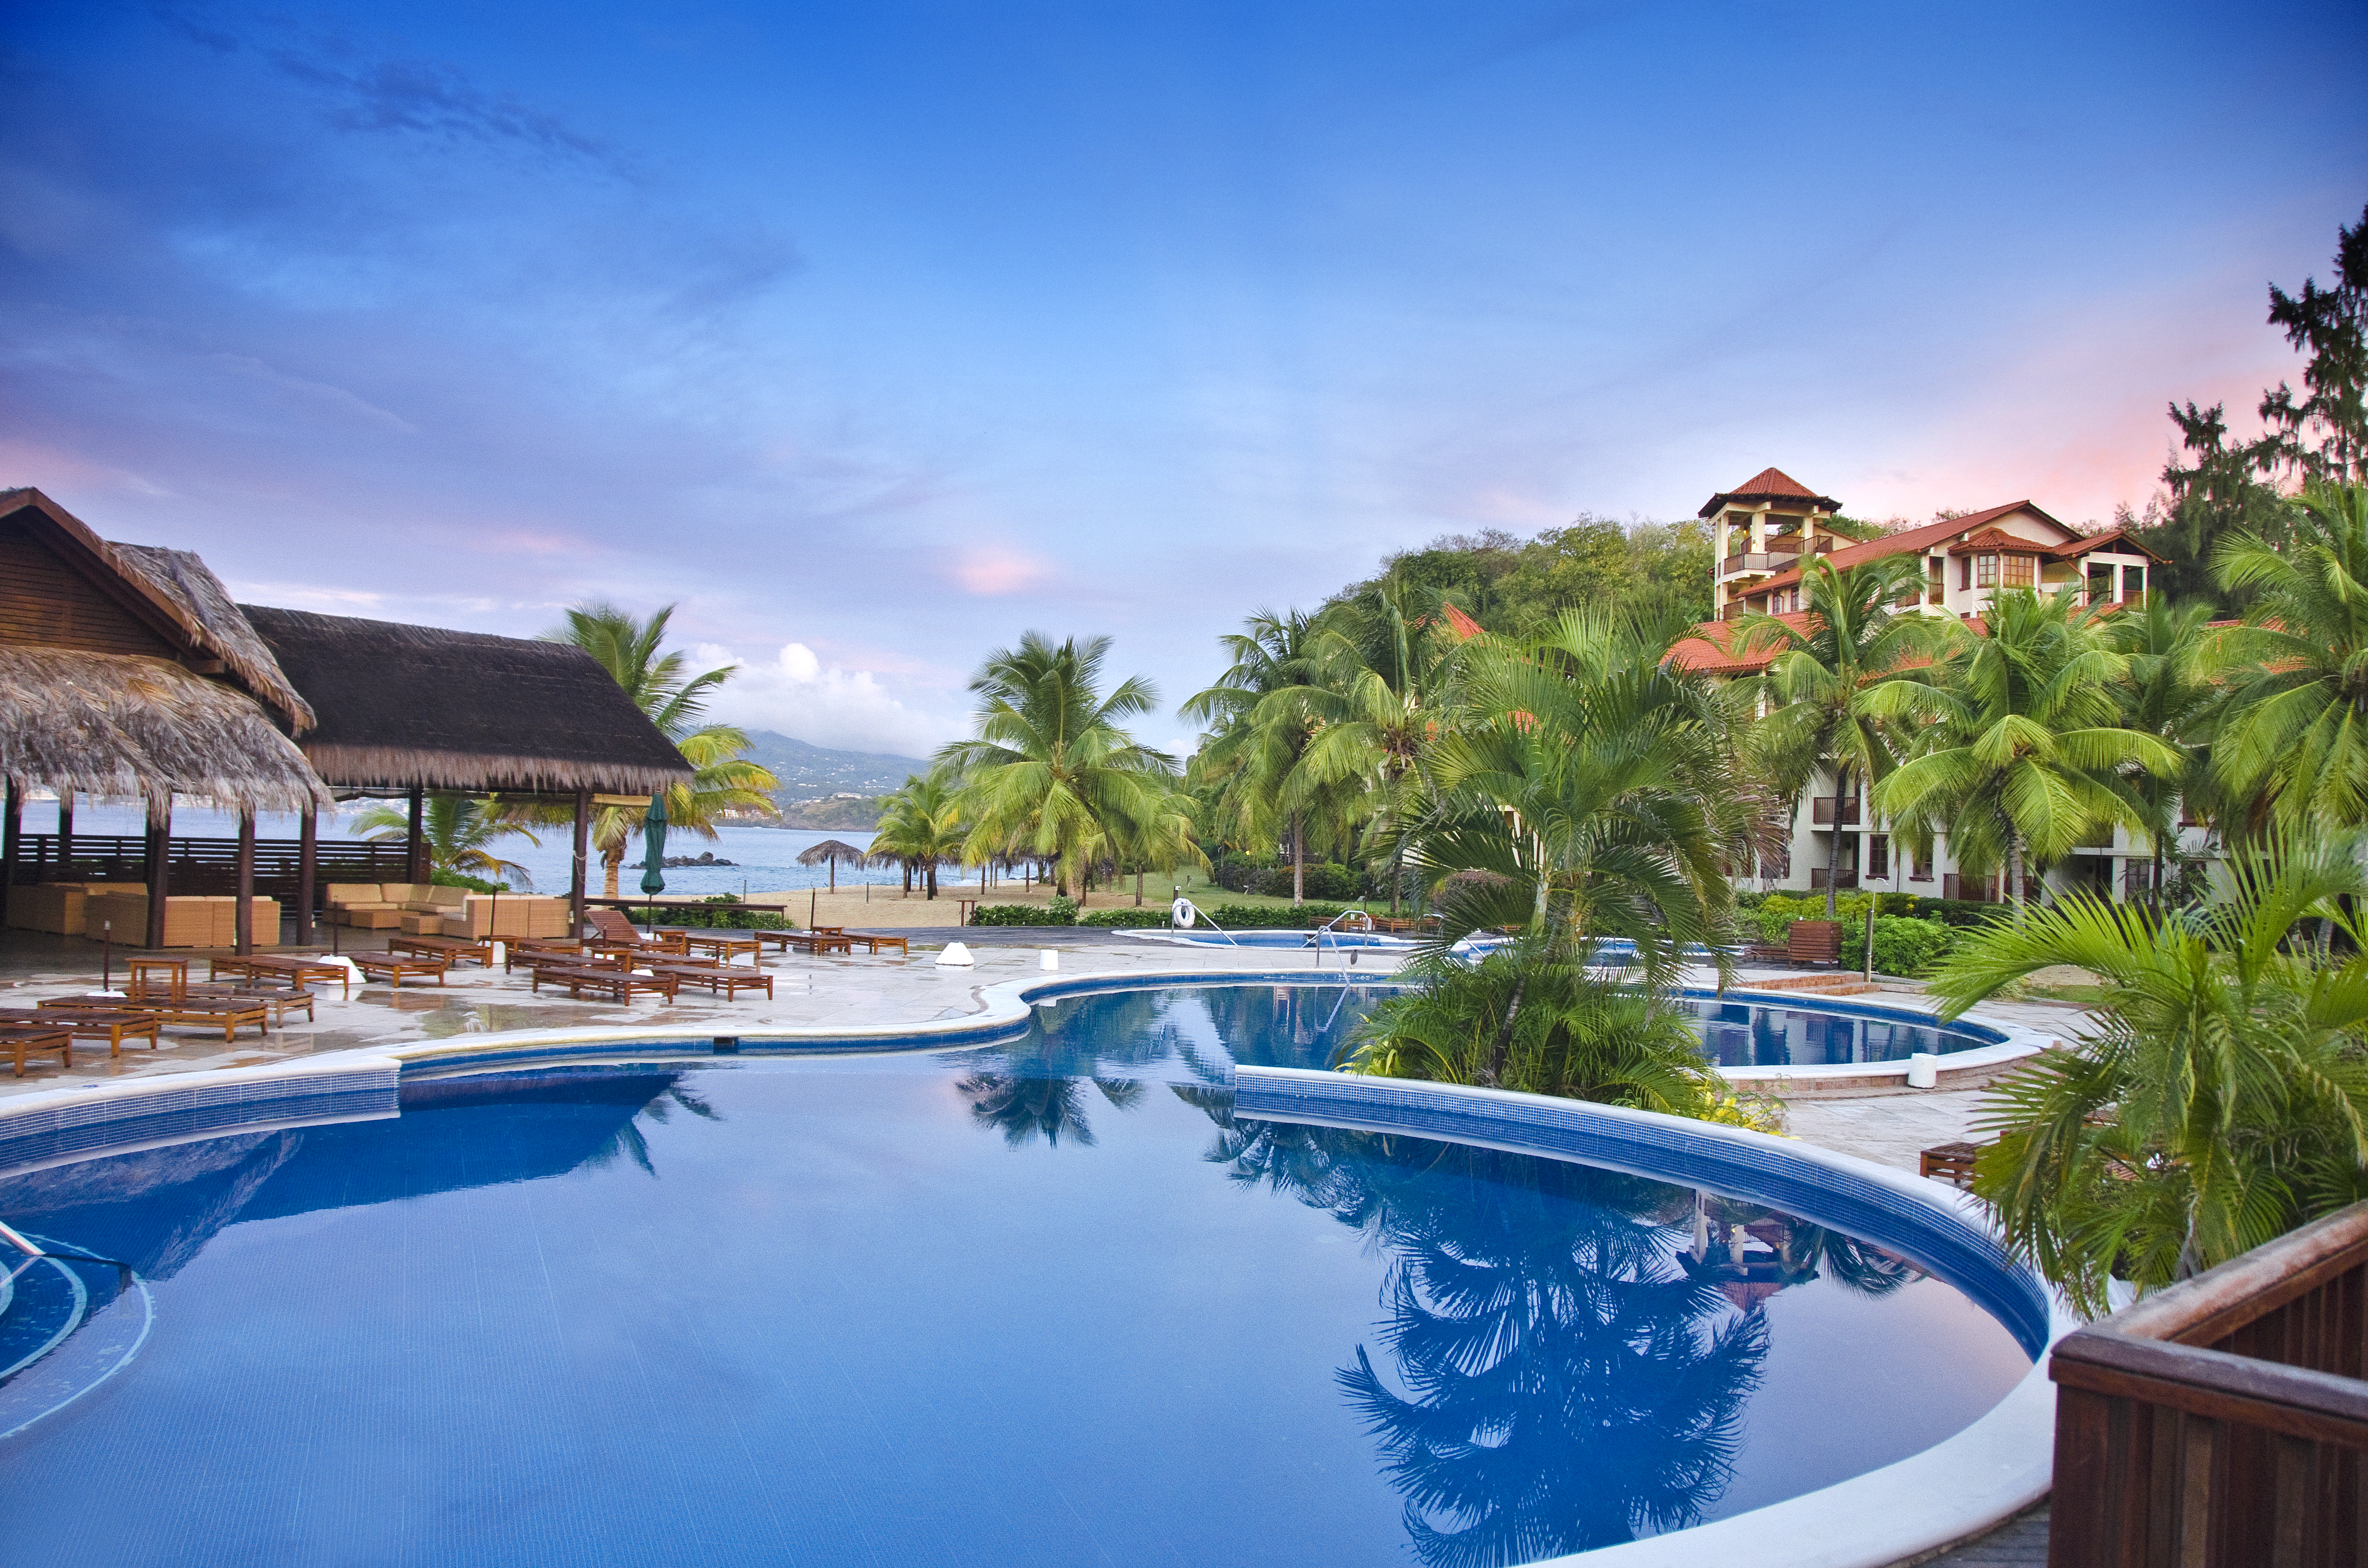 Sandals grenada all inclusive 28 images sandals for Best all inclusive resorts for your money